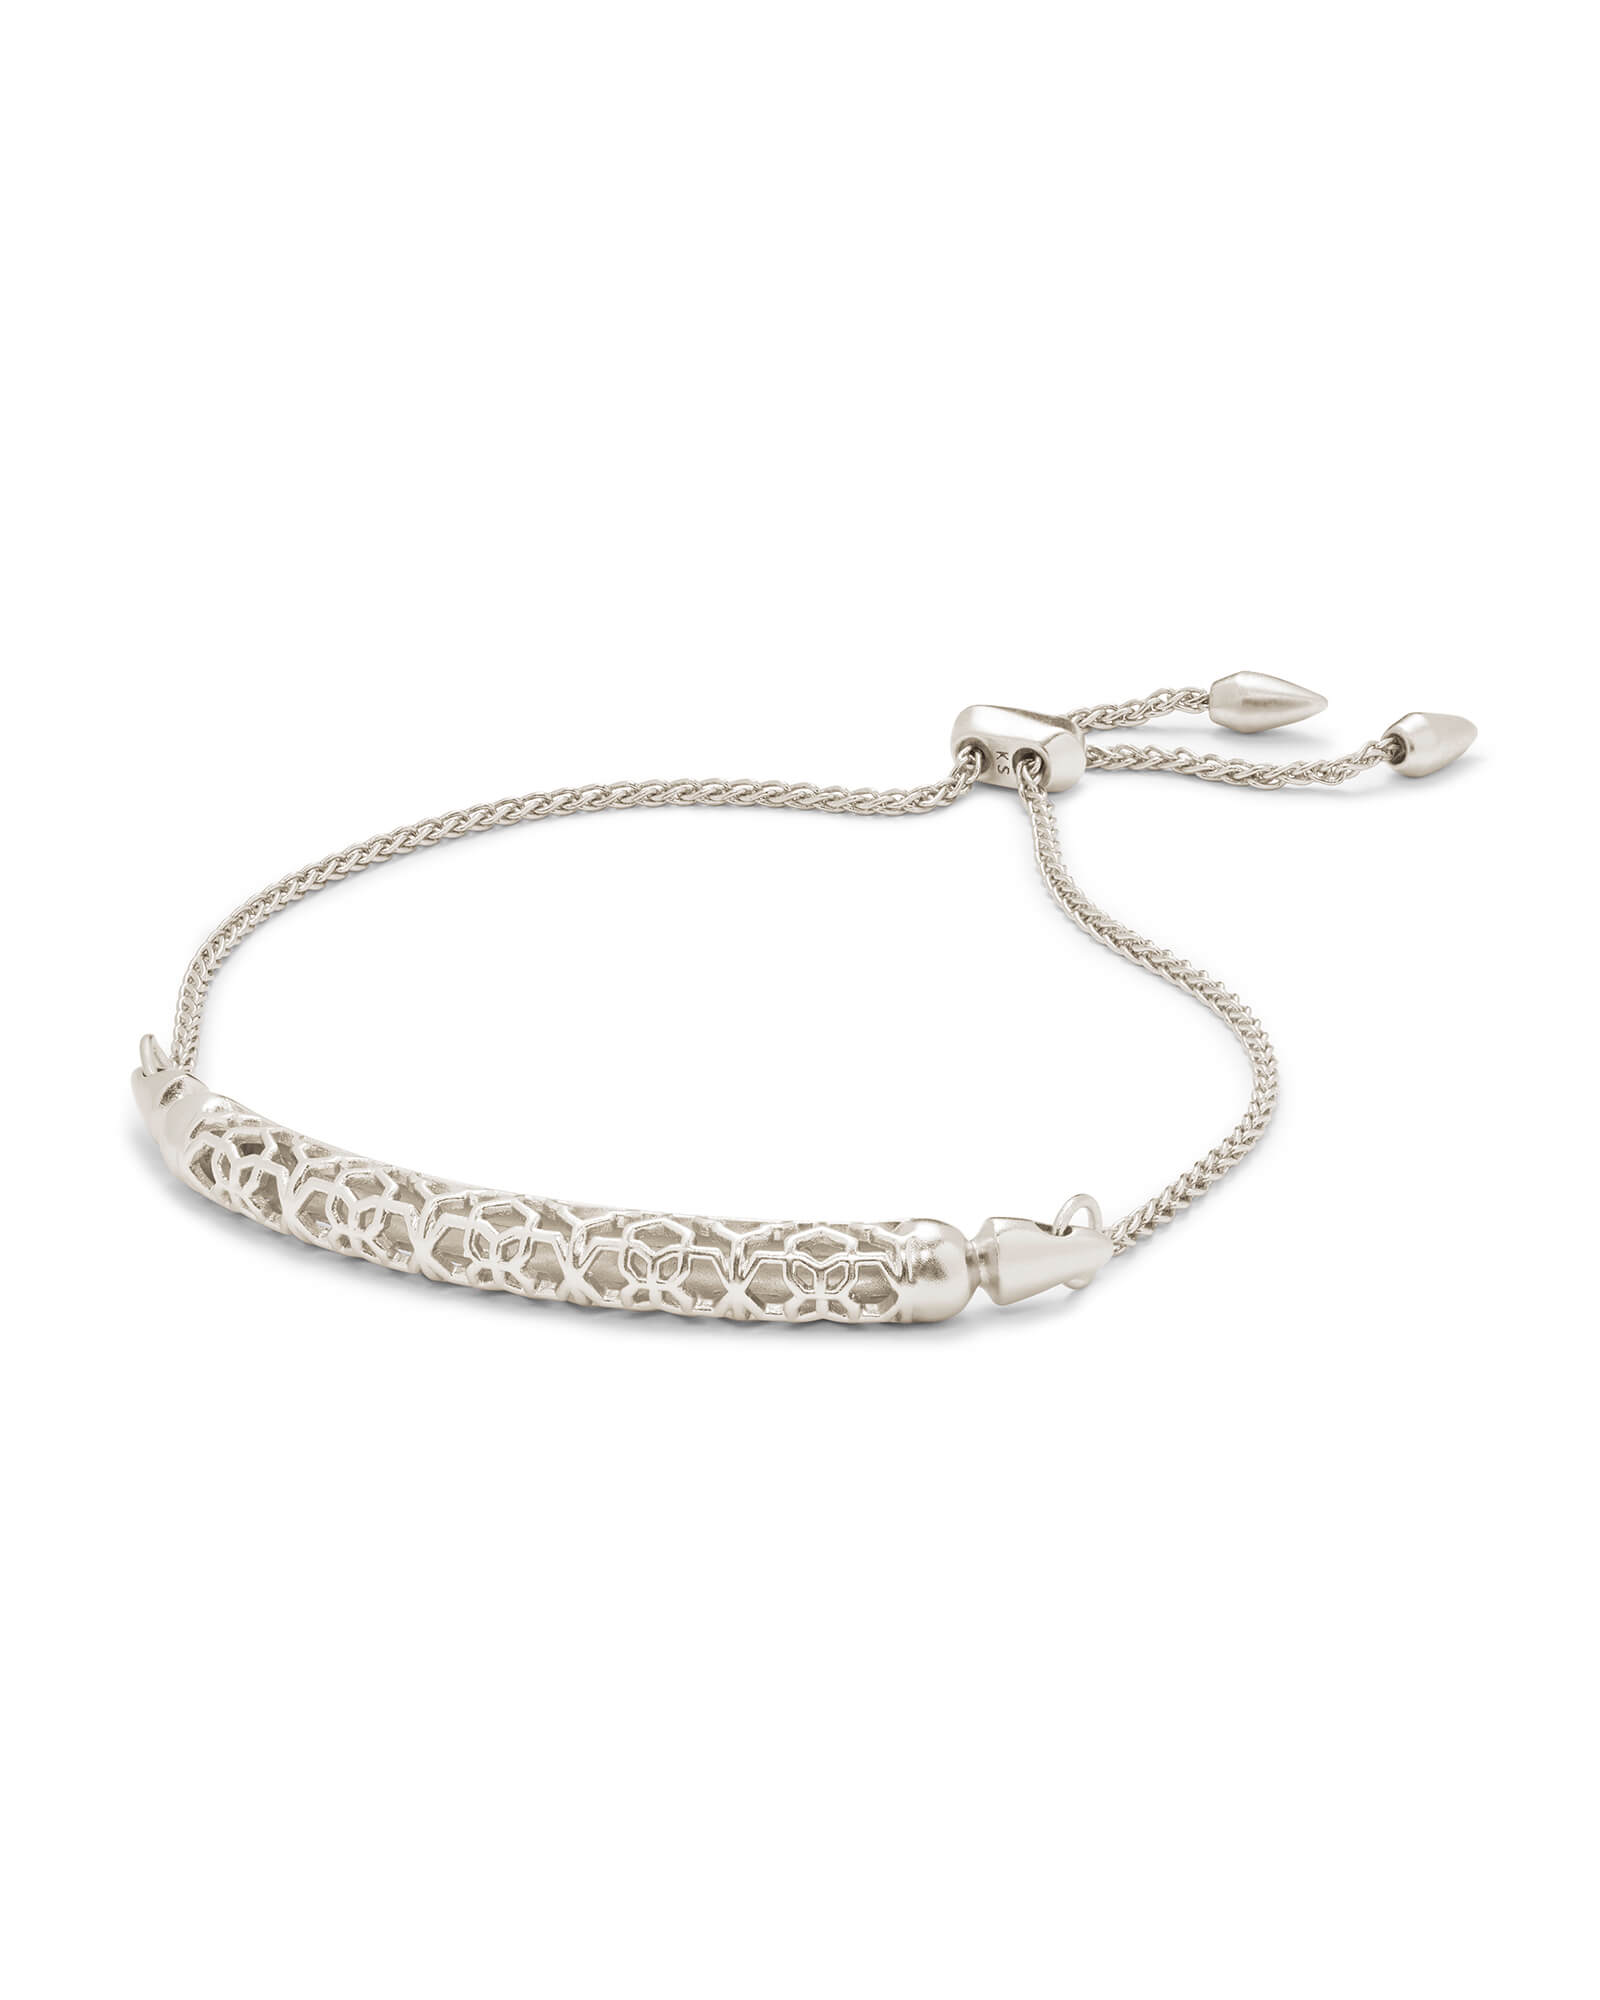 Gilly Silver Link Bracelet in Silver Filigree